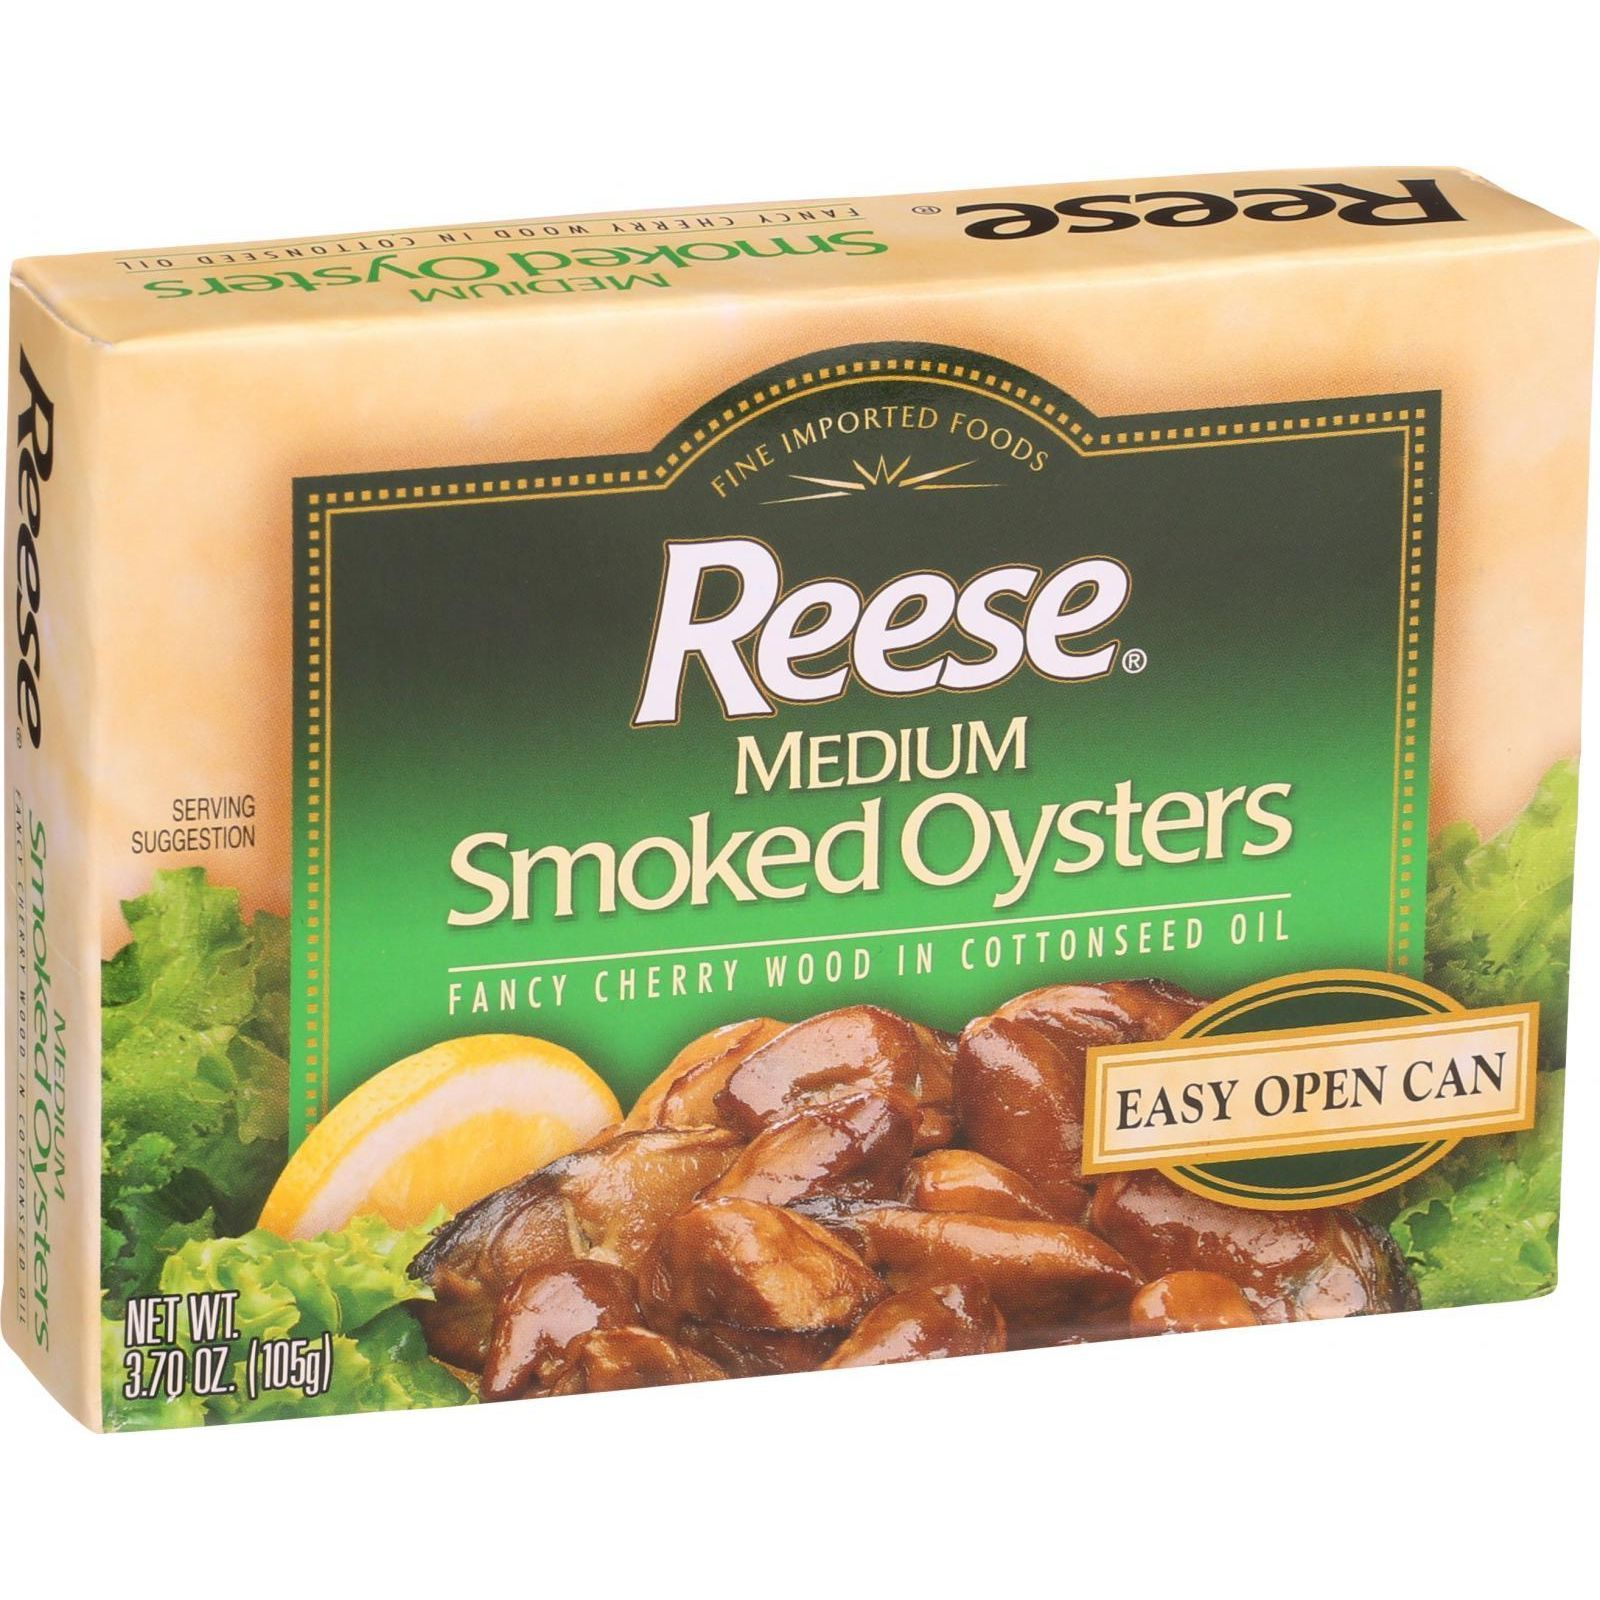 Reese Oysters - Smoked - Medium - 3.7 oz - Case of 10